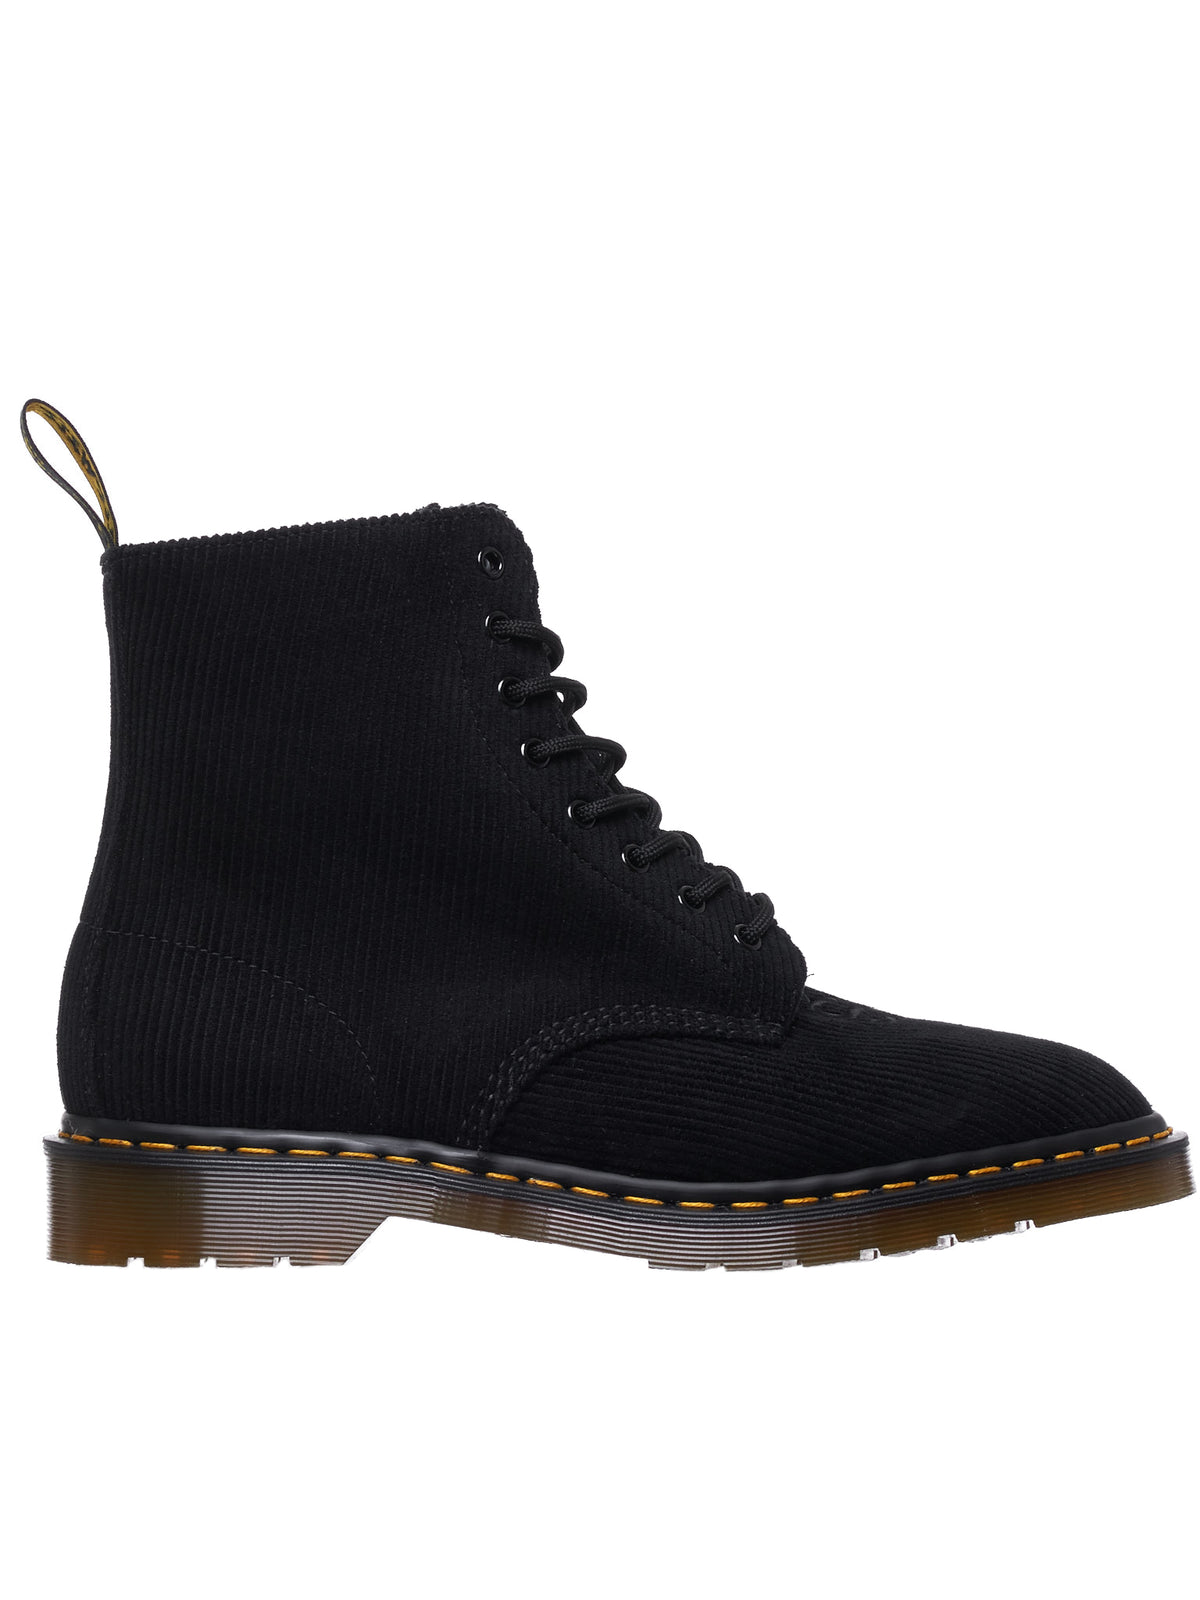 Dr. Martens x Undercover Boots | H.Lorenzo Front